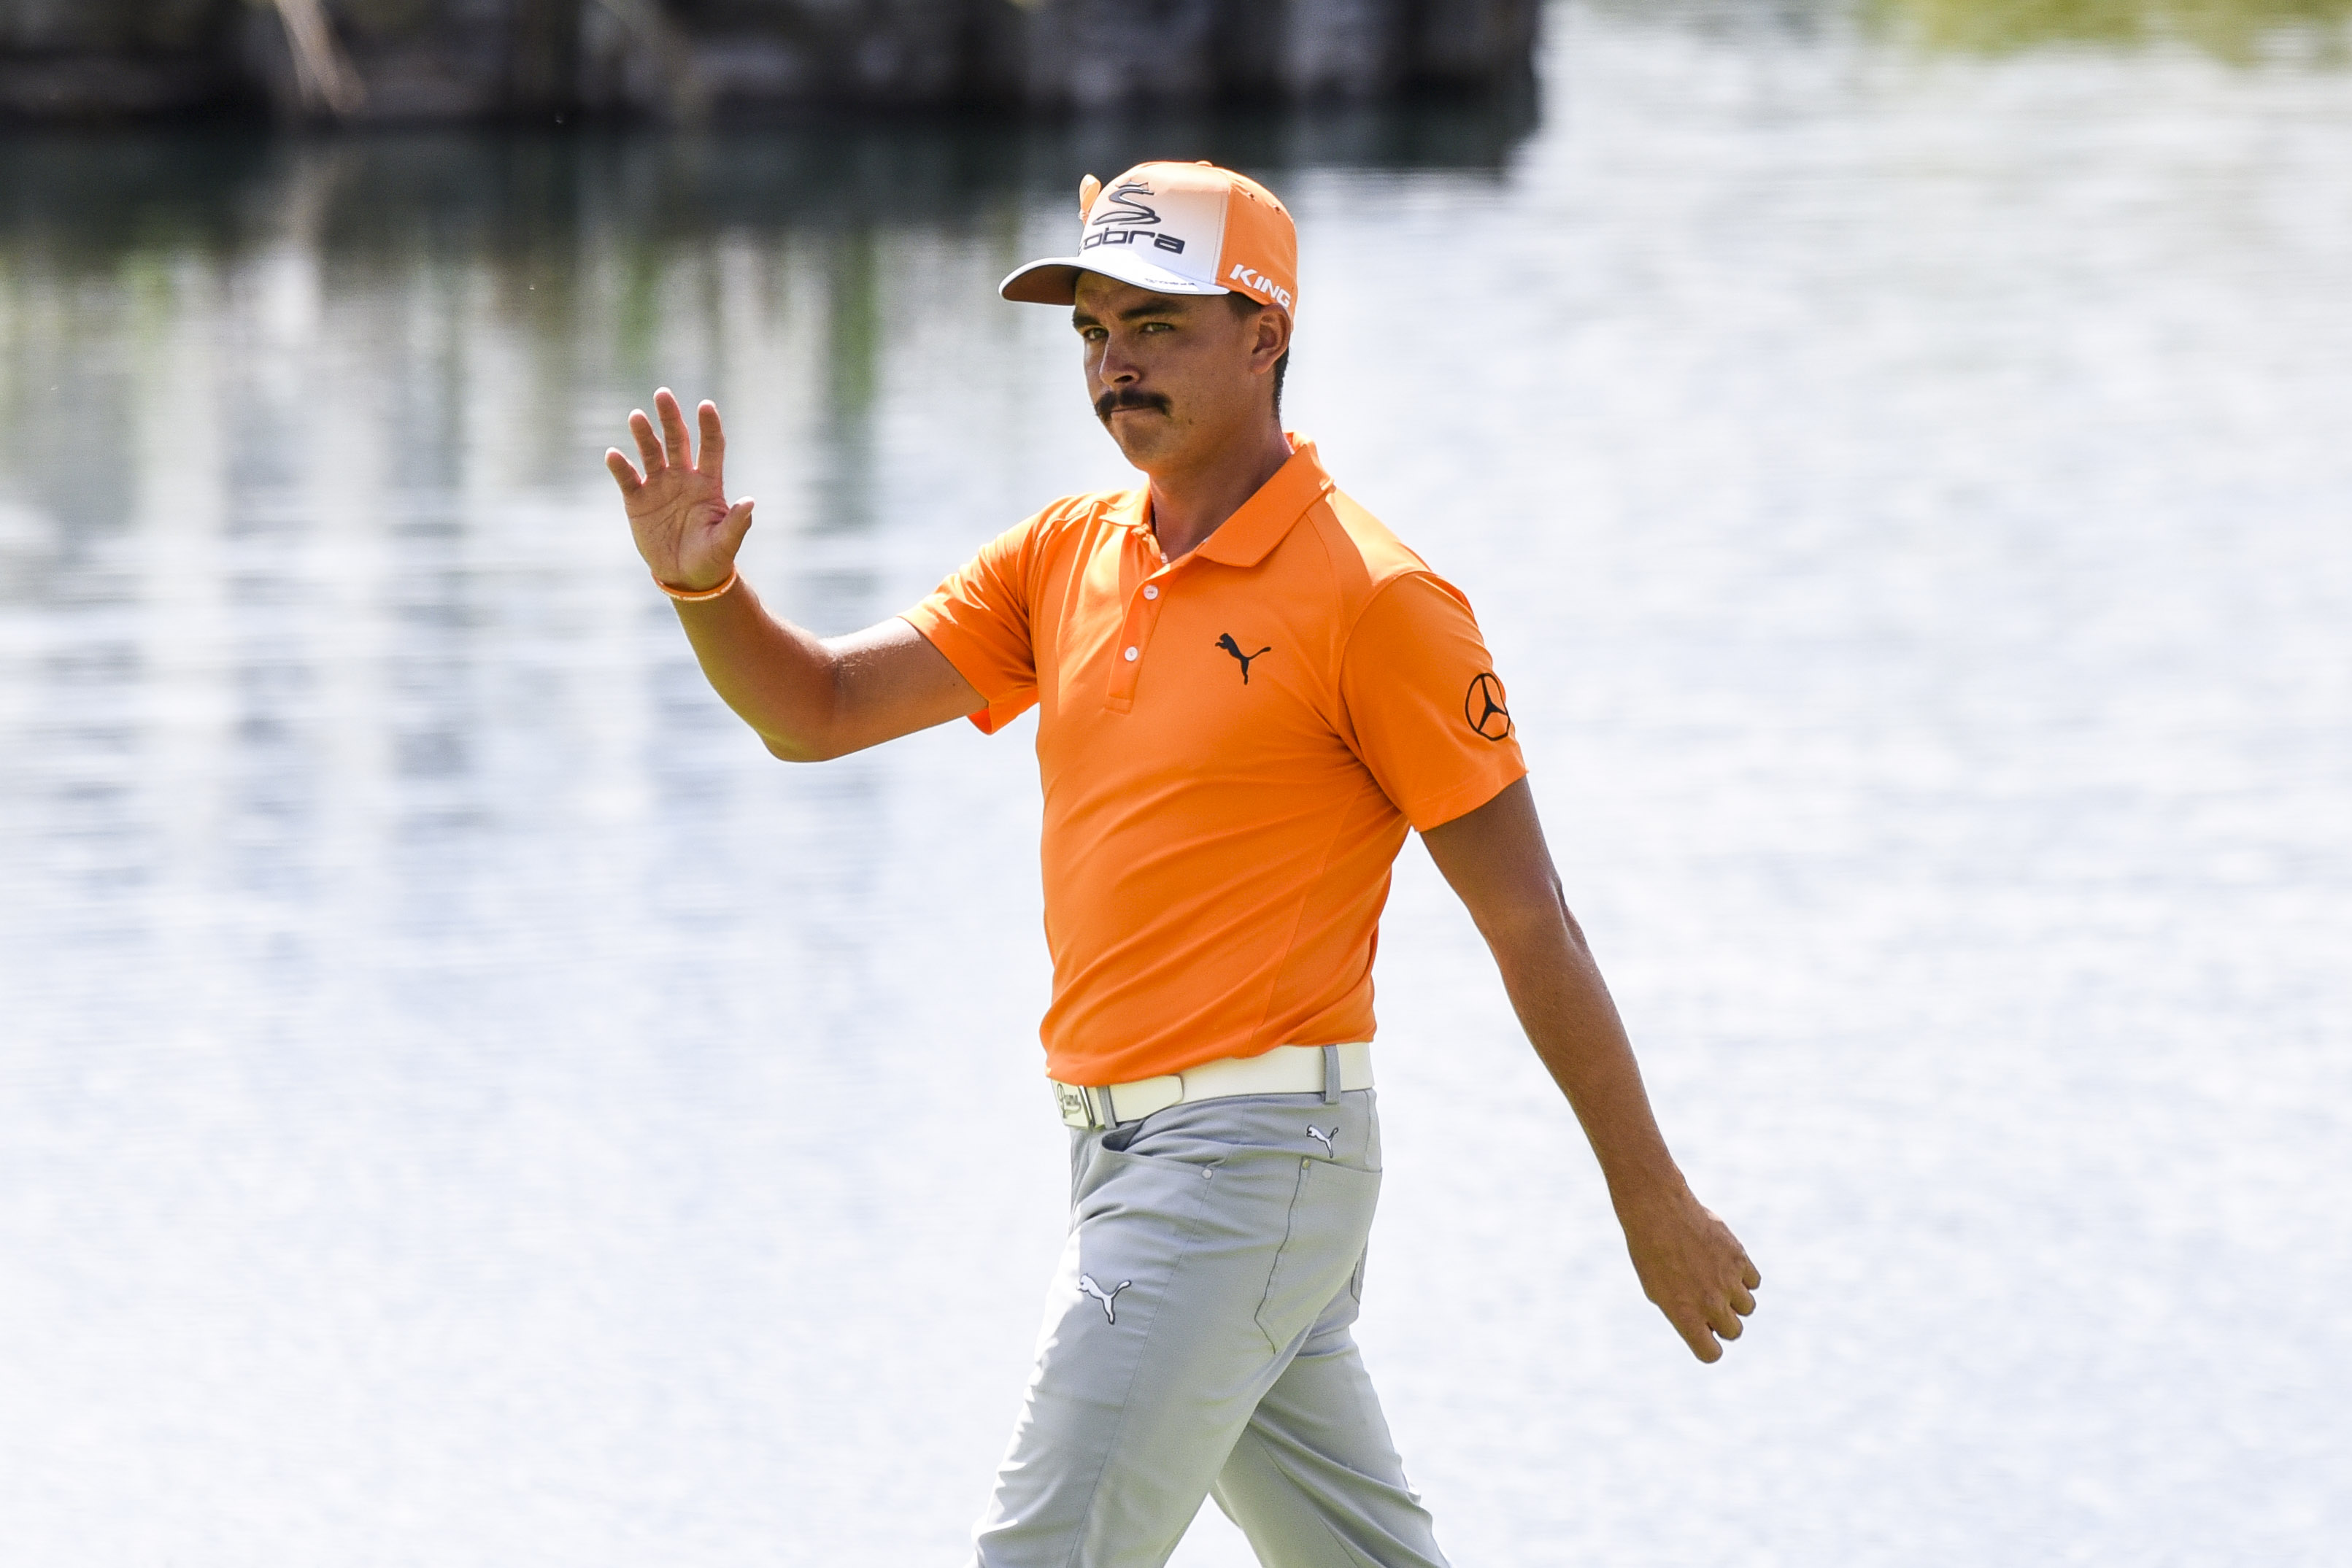 Fowler has yet to win a Ryder Cup match.